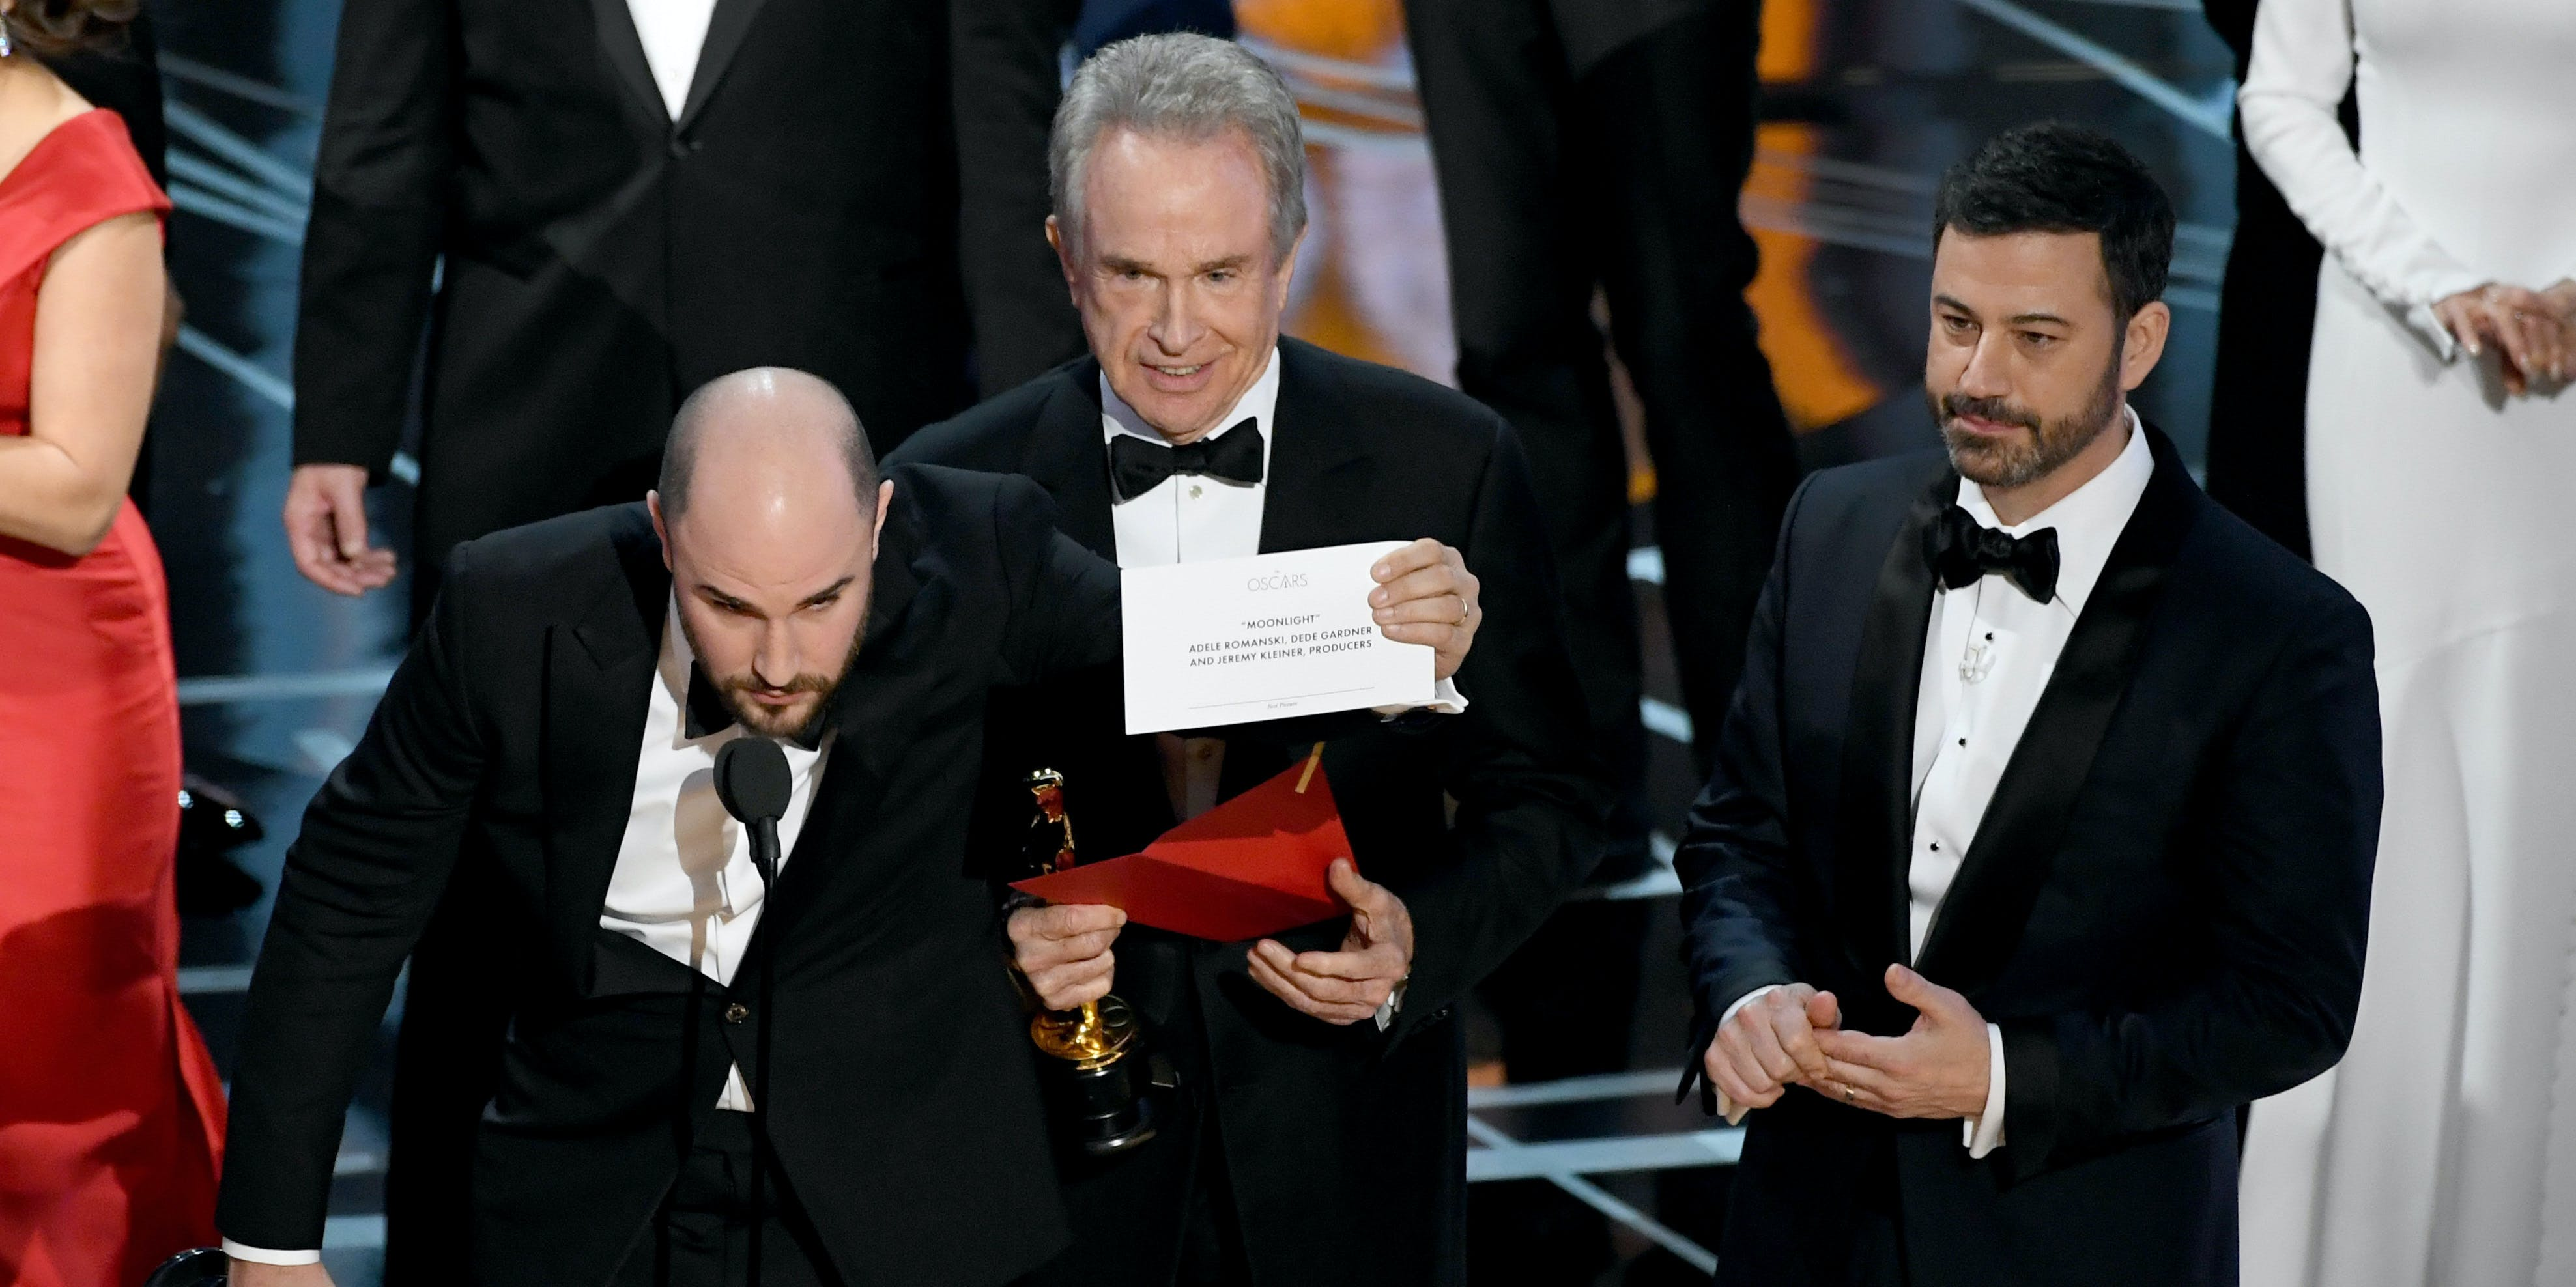 HOLLYWOOD, CA - FEBRUARY 26:  'La La Land' producer Jordan Horowitz holds up the winner card reading actual Best Picture winner 'Moonlight' with actor Warren Beatty and host Jimmy Kimmel onstage during the 89th Annual Academy Awards at Hollywood & Highland Center on February 26, 2017 in Hollywood, California.  (Photo by Kevin Winter/Getty Images)